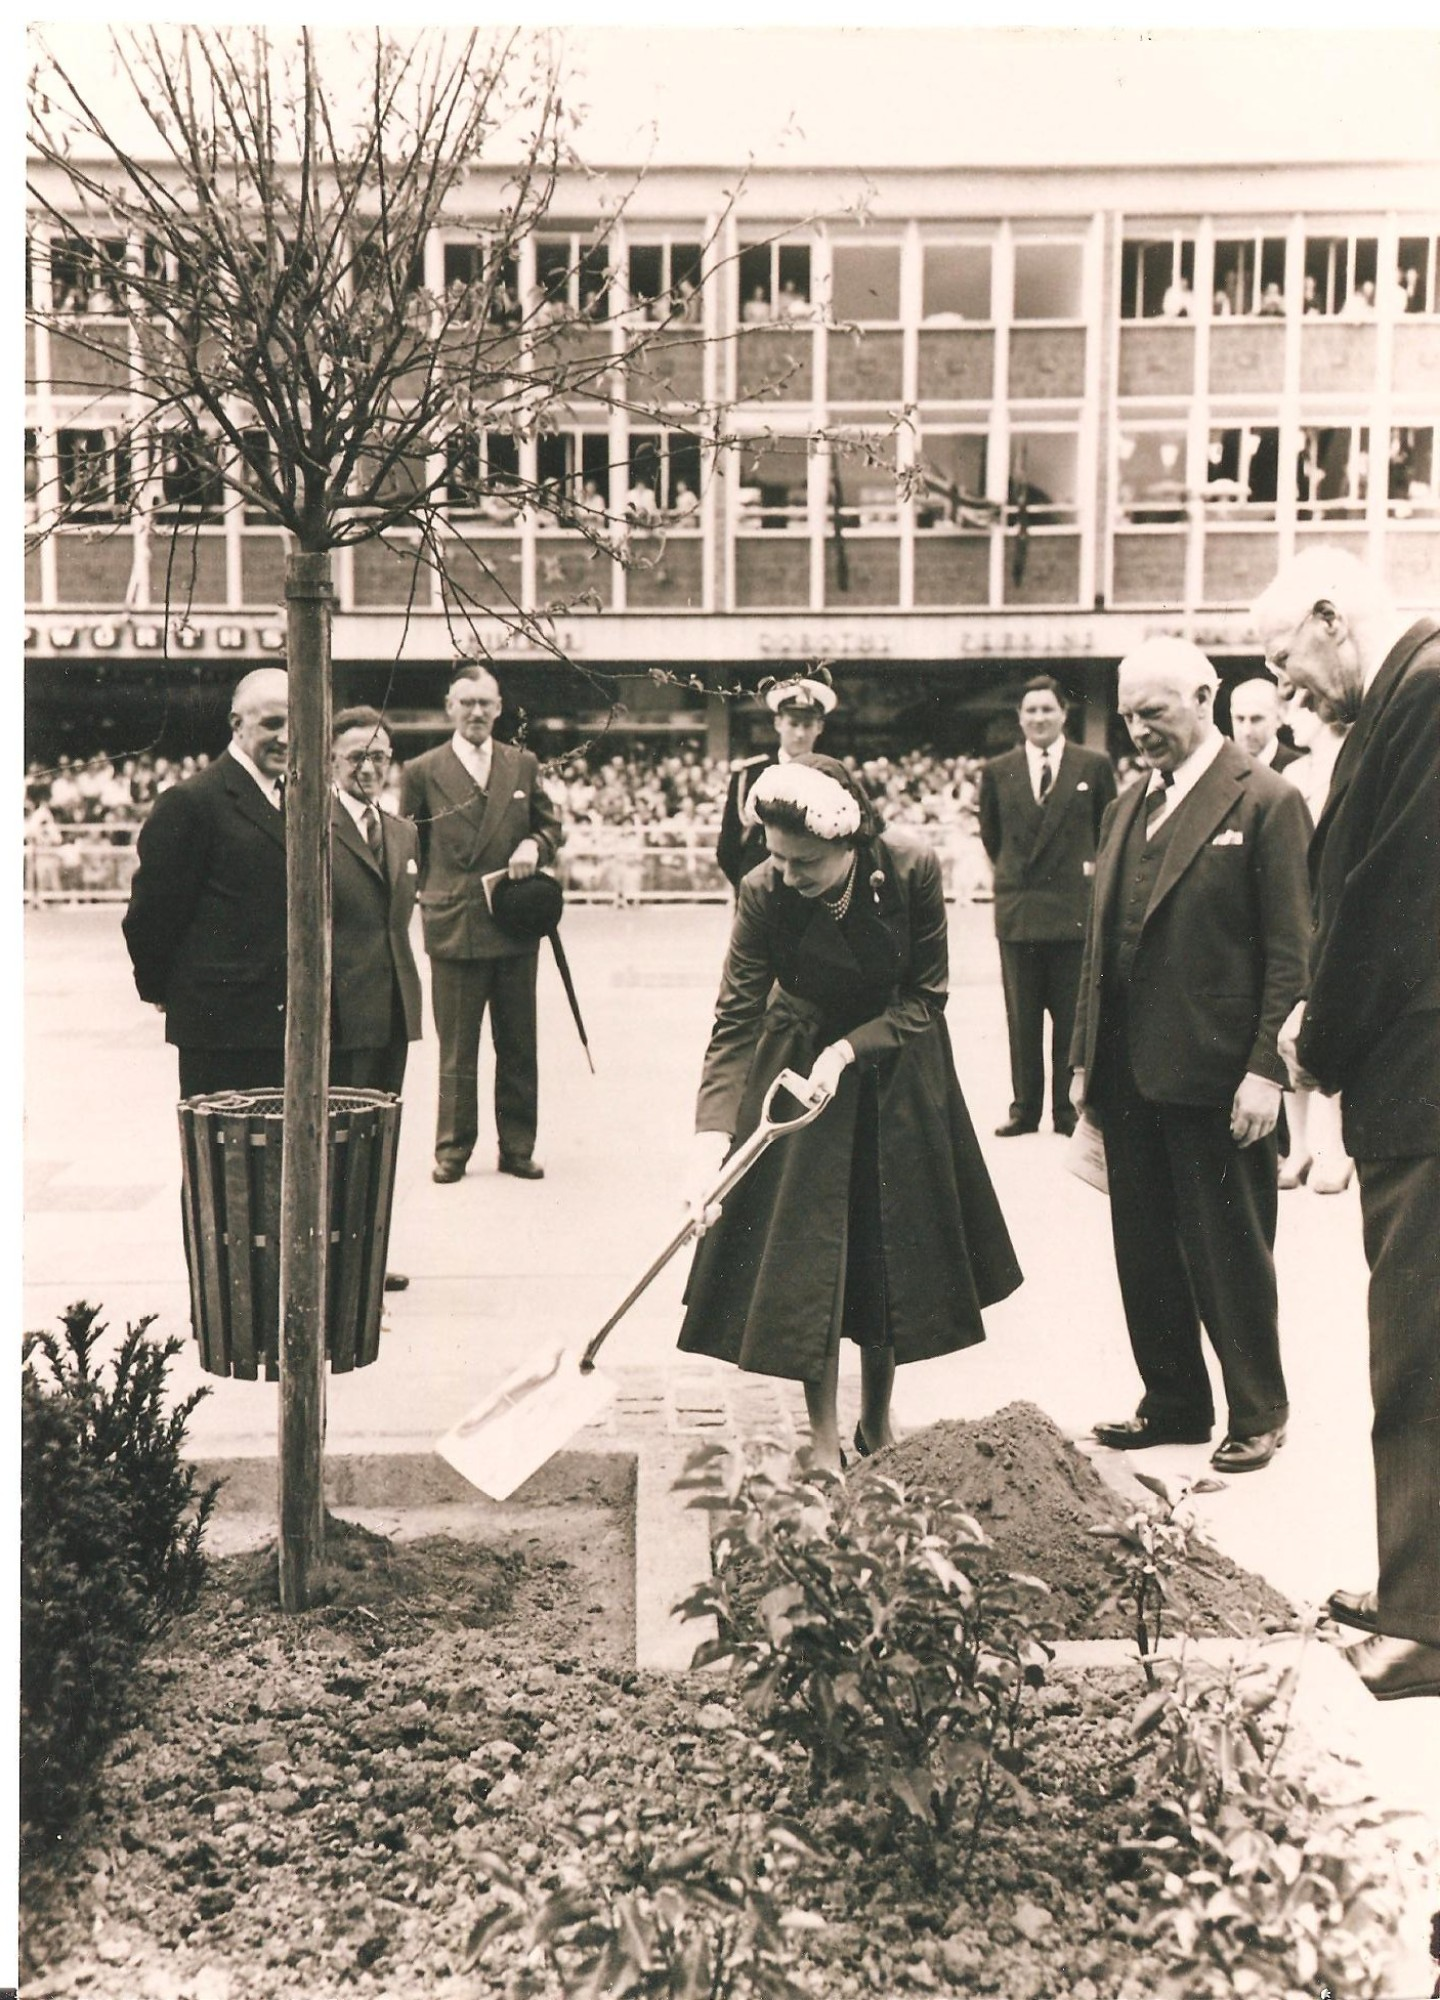 Queen planting tree, Queen's Square, 1958